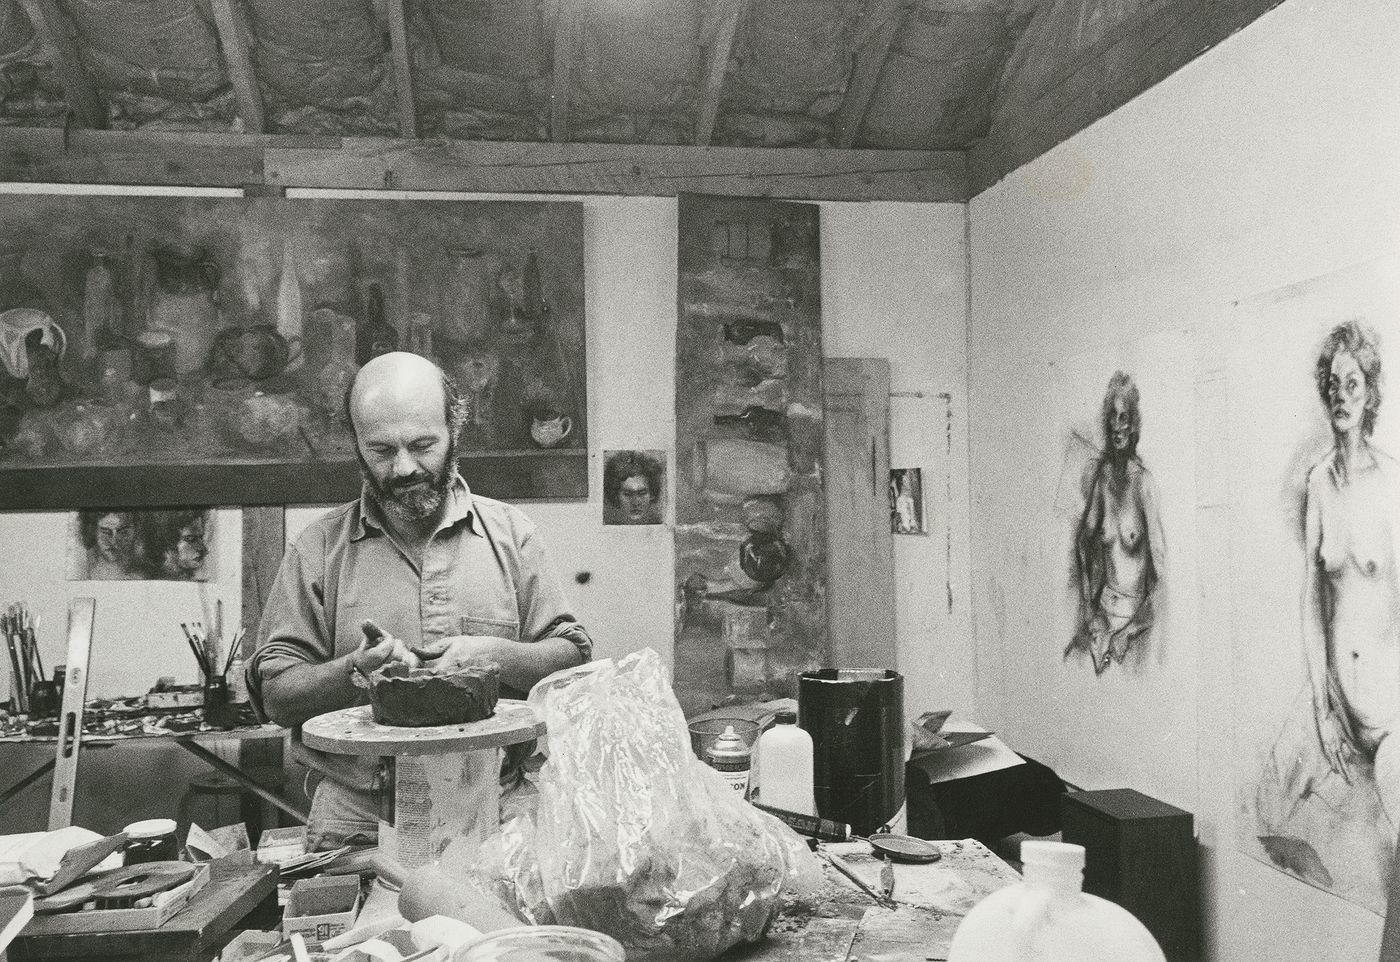 Jim Dine has been prolific in his 60-plus years of producing works, from large-scale Pop-inflected paintings to emotive collaged works-on-paper. Dine is often considered alongside rougher painters like Robert Rauschenberg and Jasper Johns.